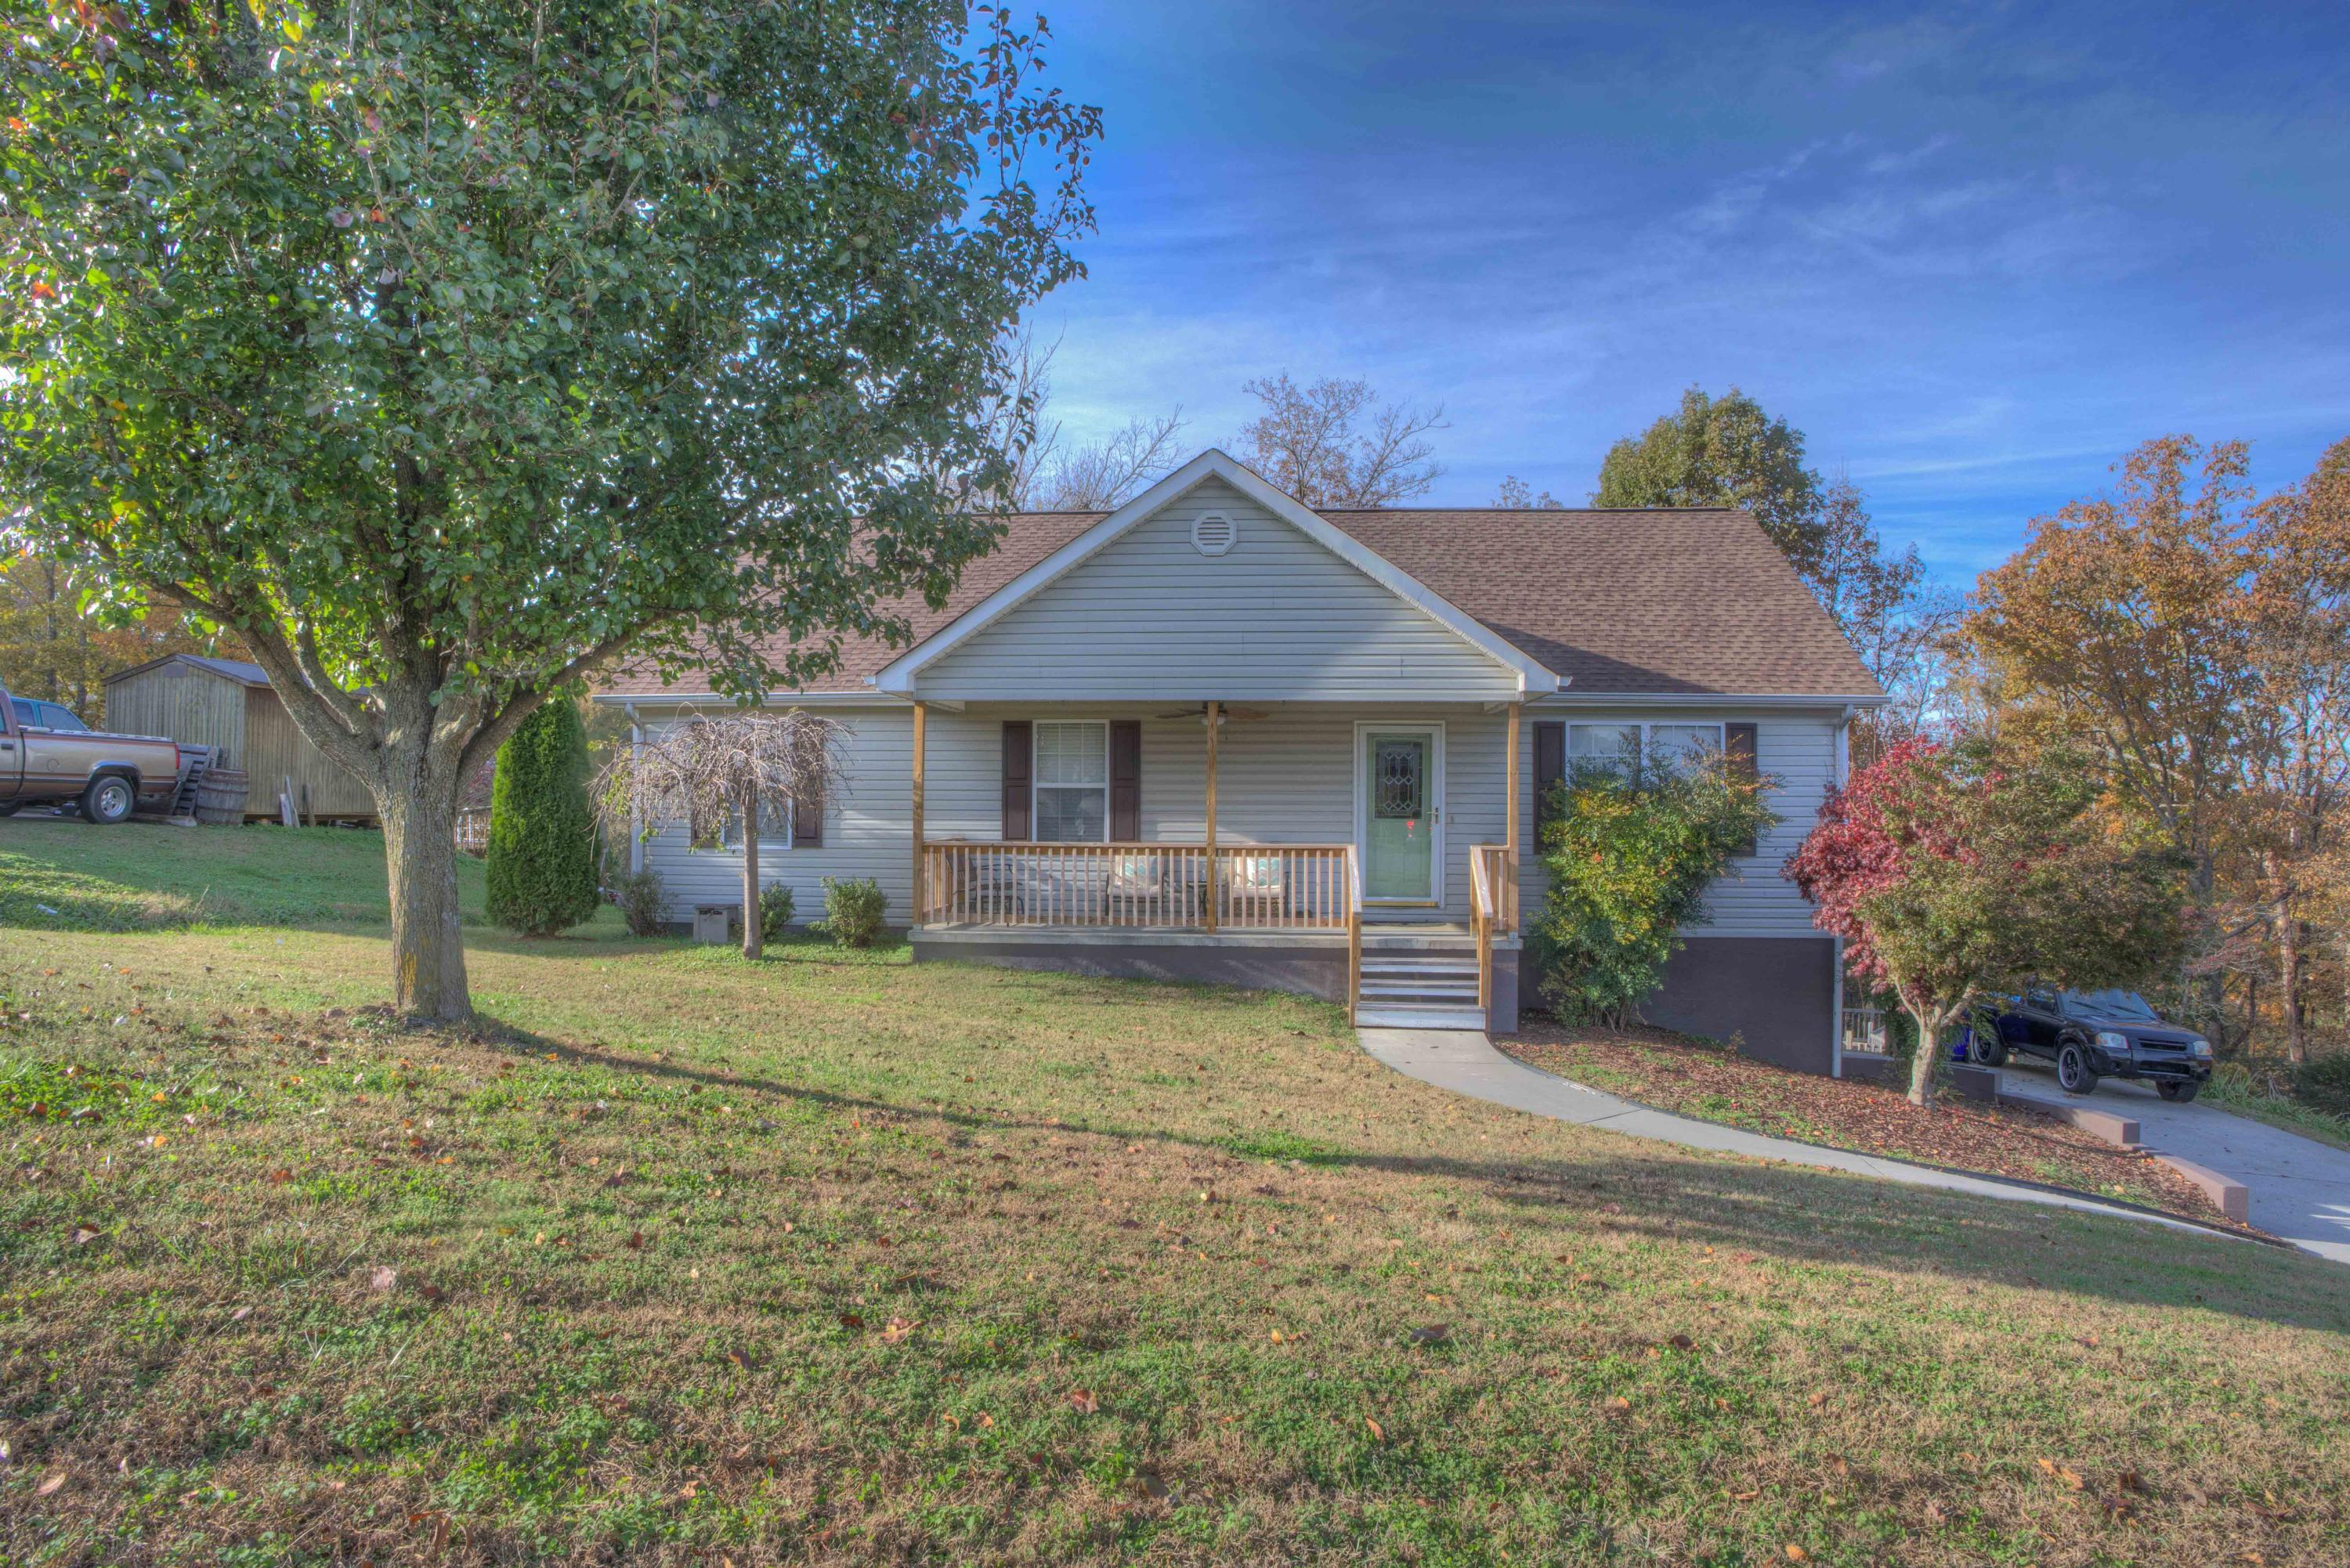 279 Hollow View Dr, Cleveland, TN 37323